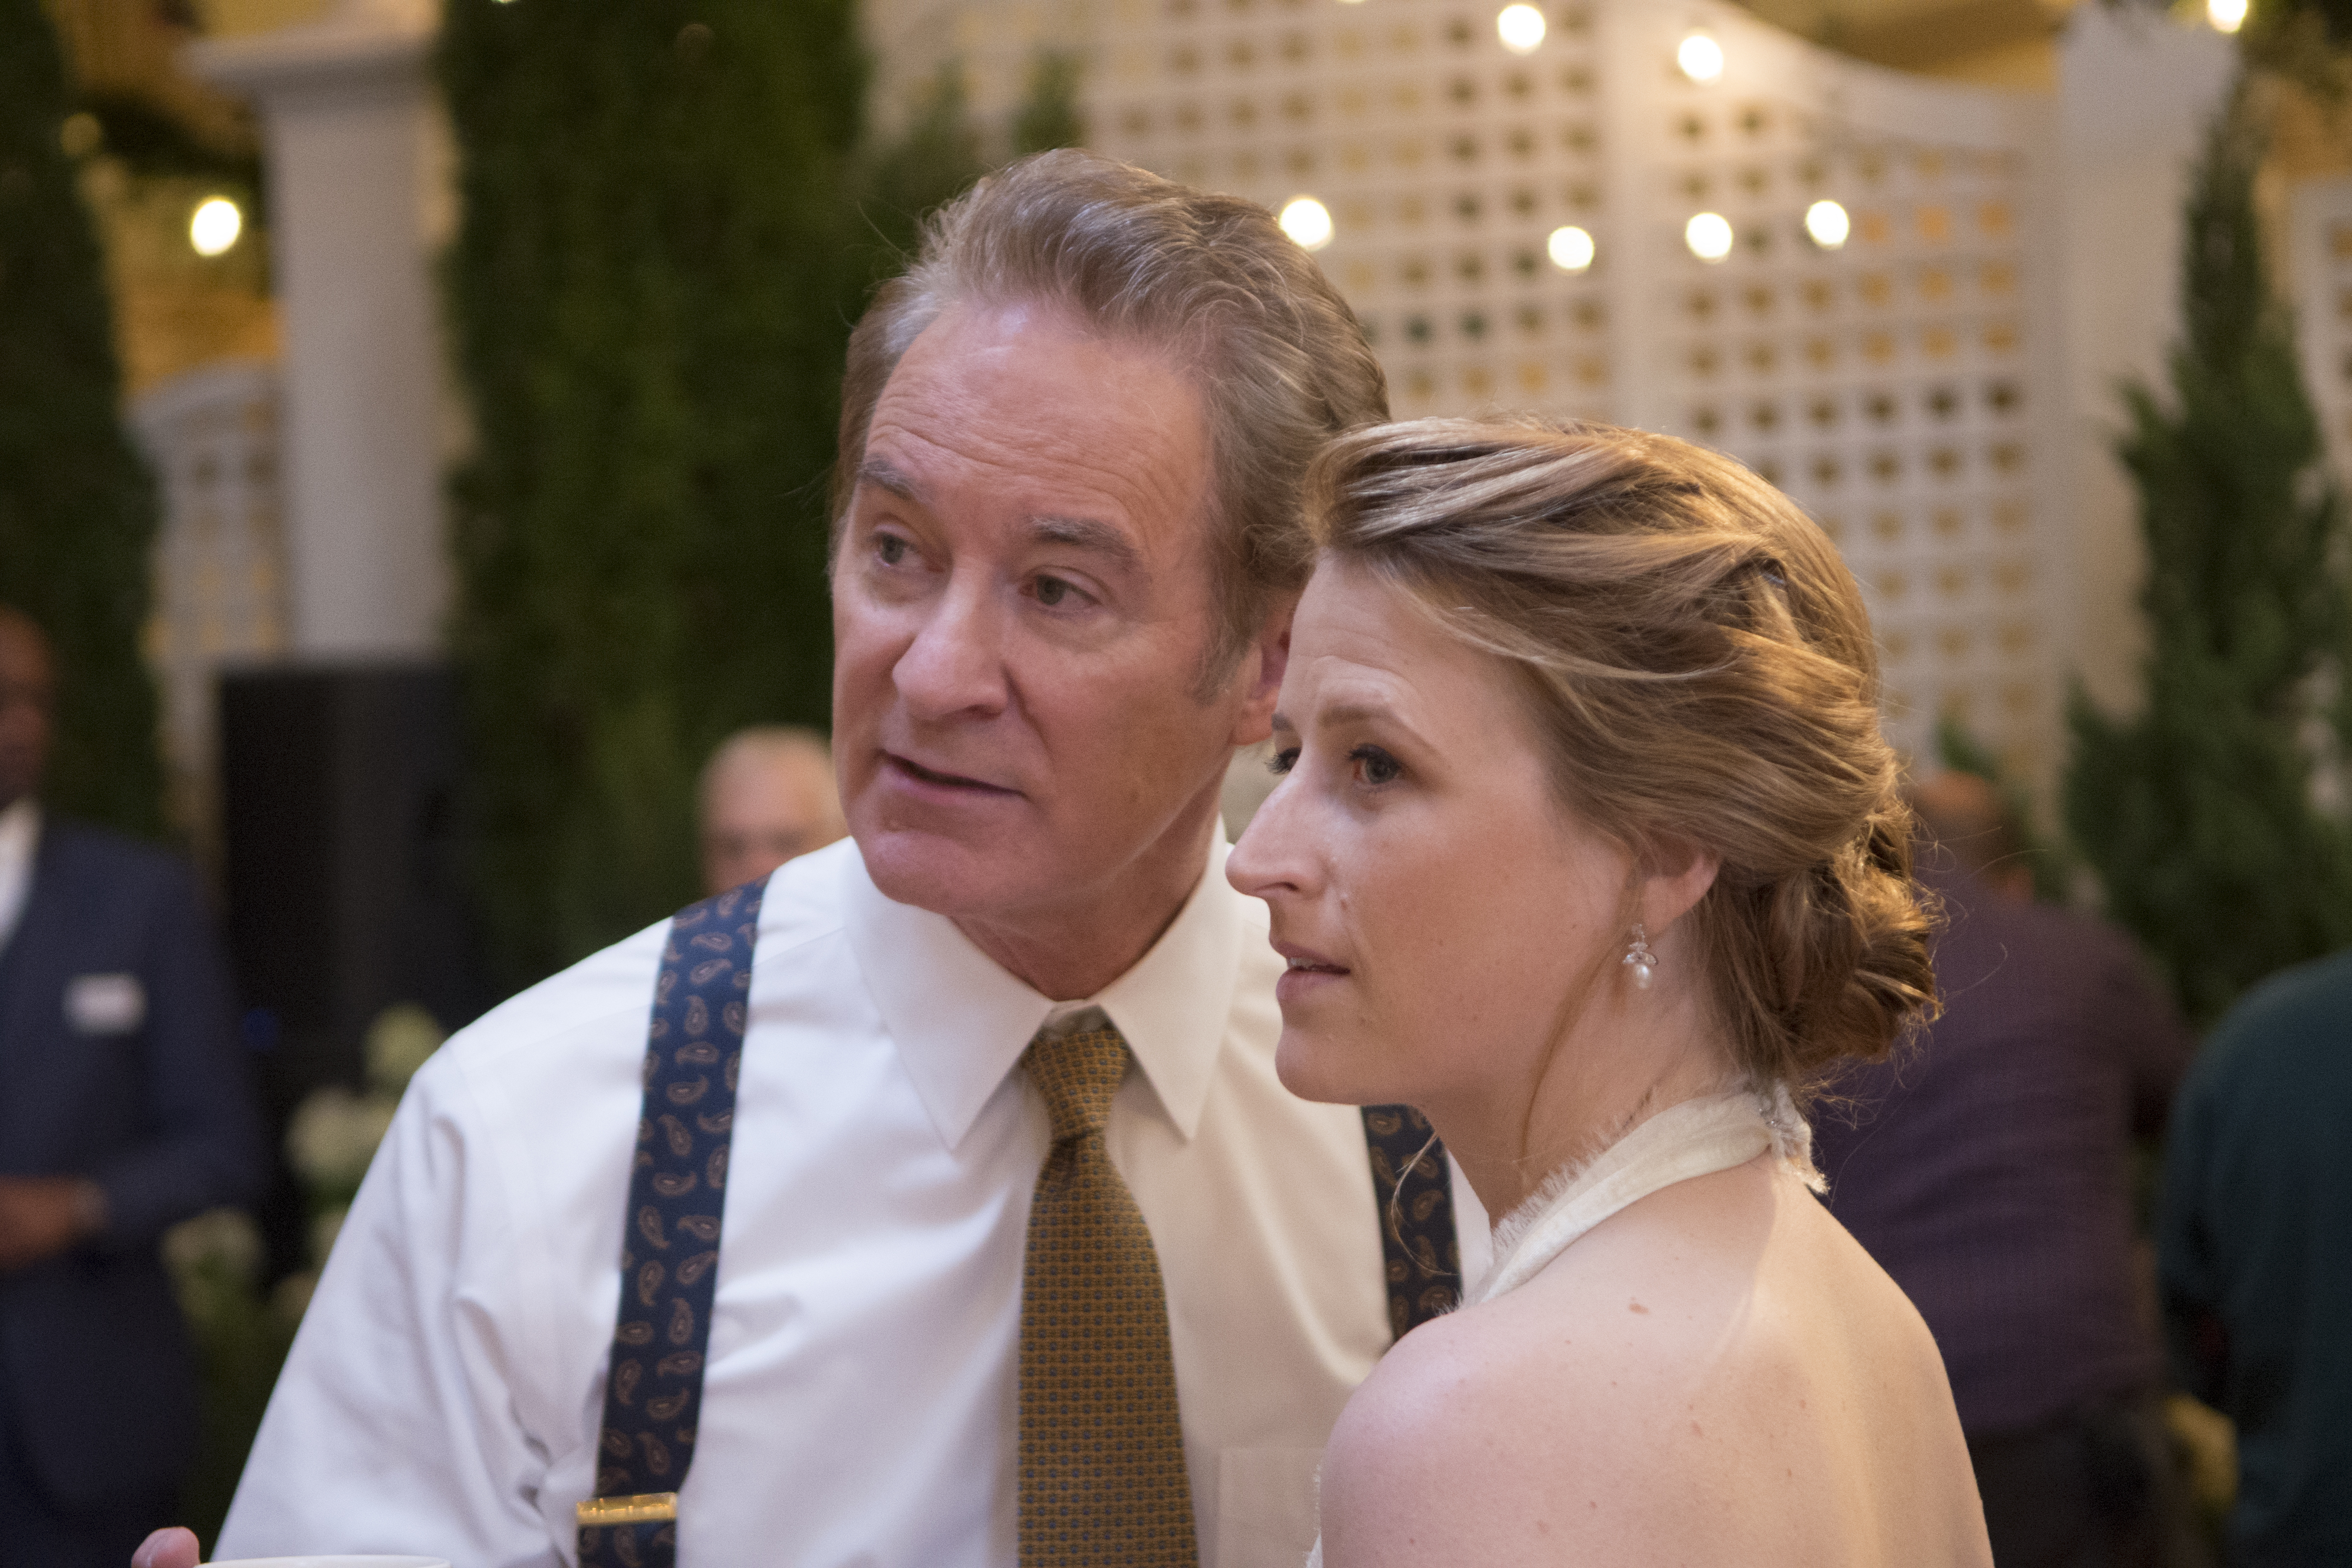 Kevin Kline and Mamie Gummer in Ricki and the Flash (2015)